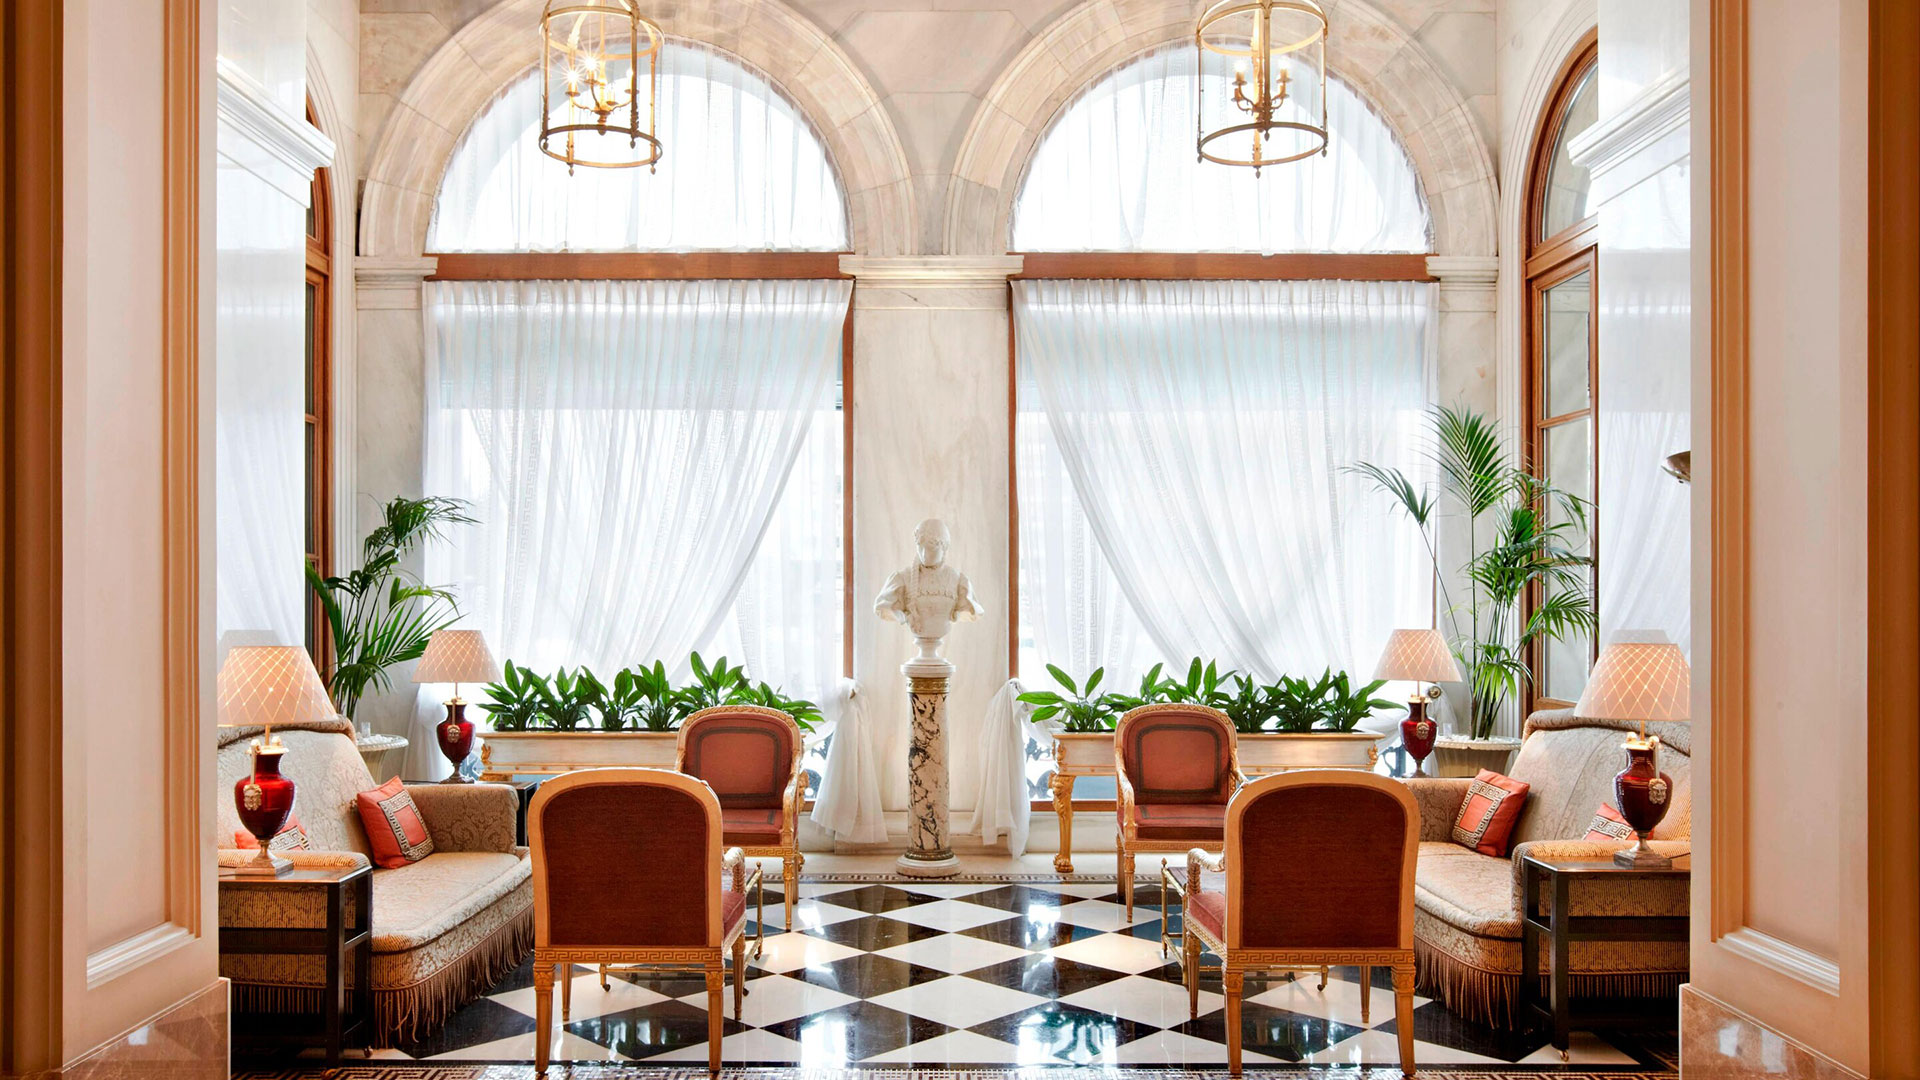 Lobby des Hotels Grand Bretagne in Athen. Luxusreisen